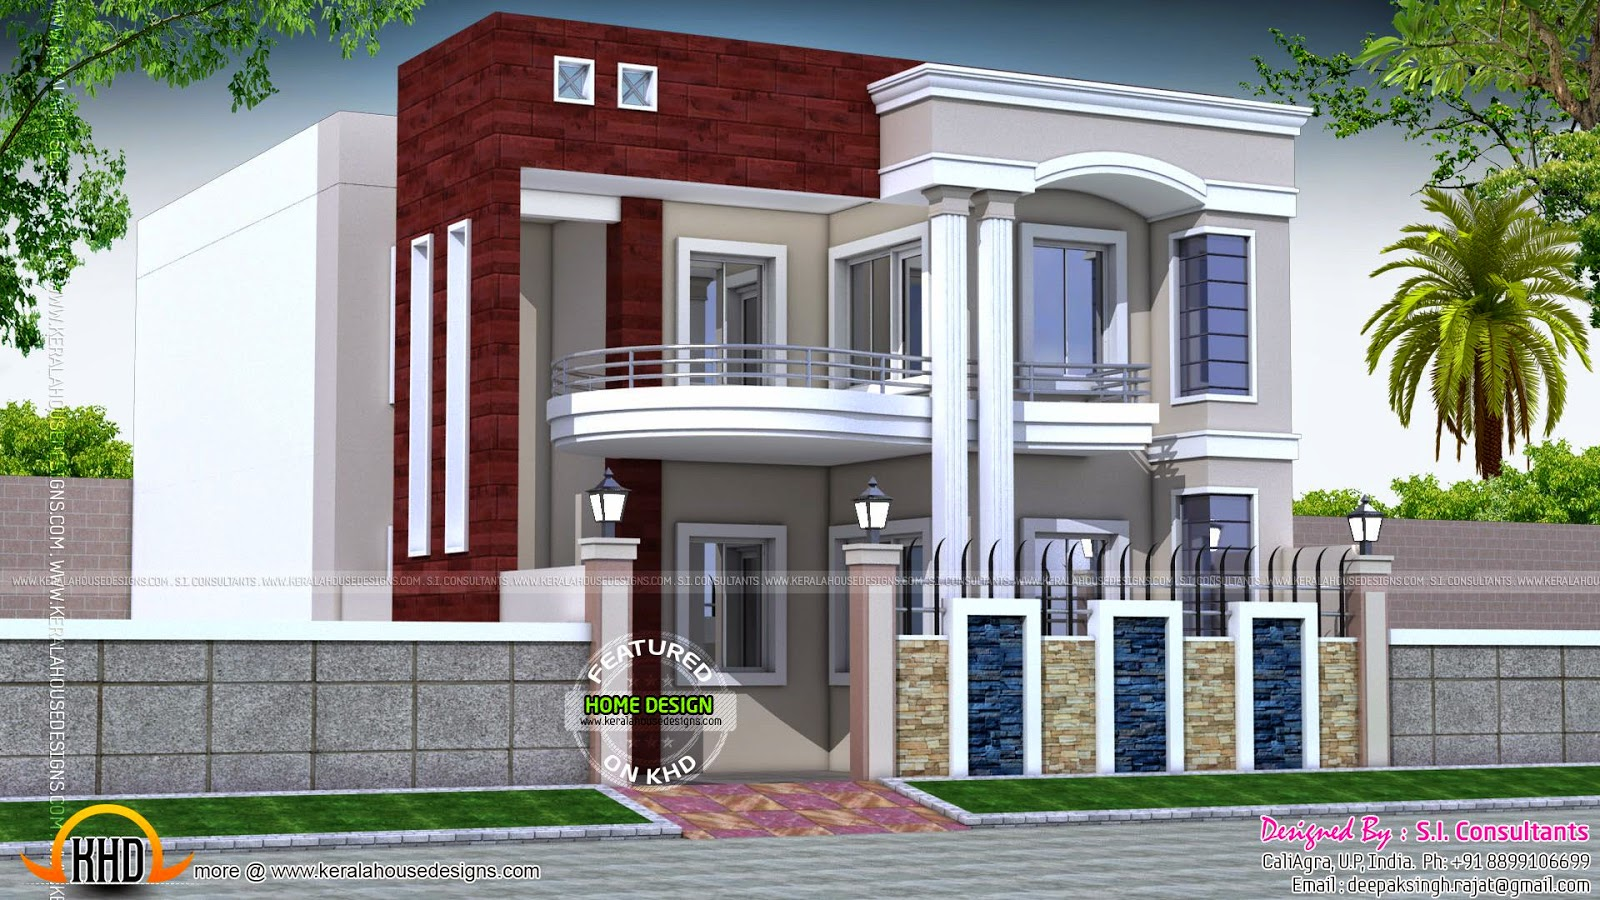 House design in north india kerala home design and floor for Home architecture design india